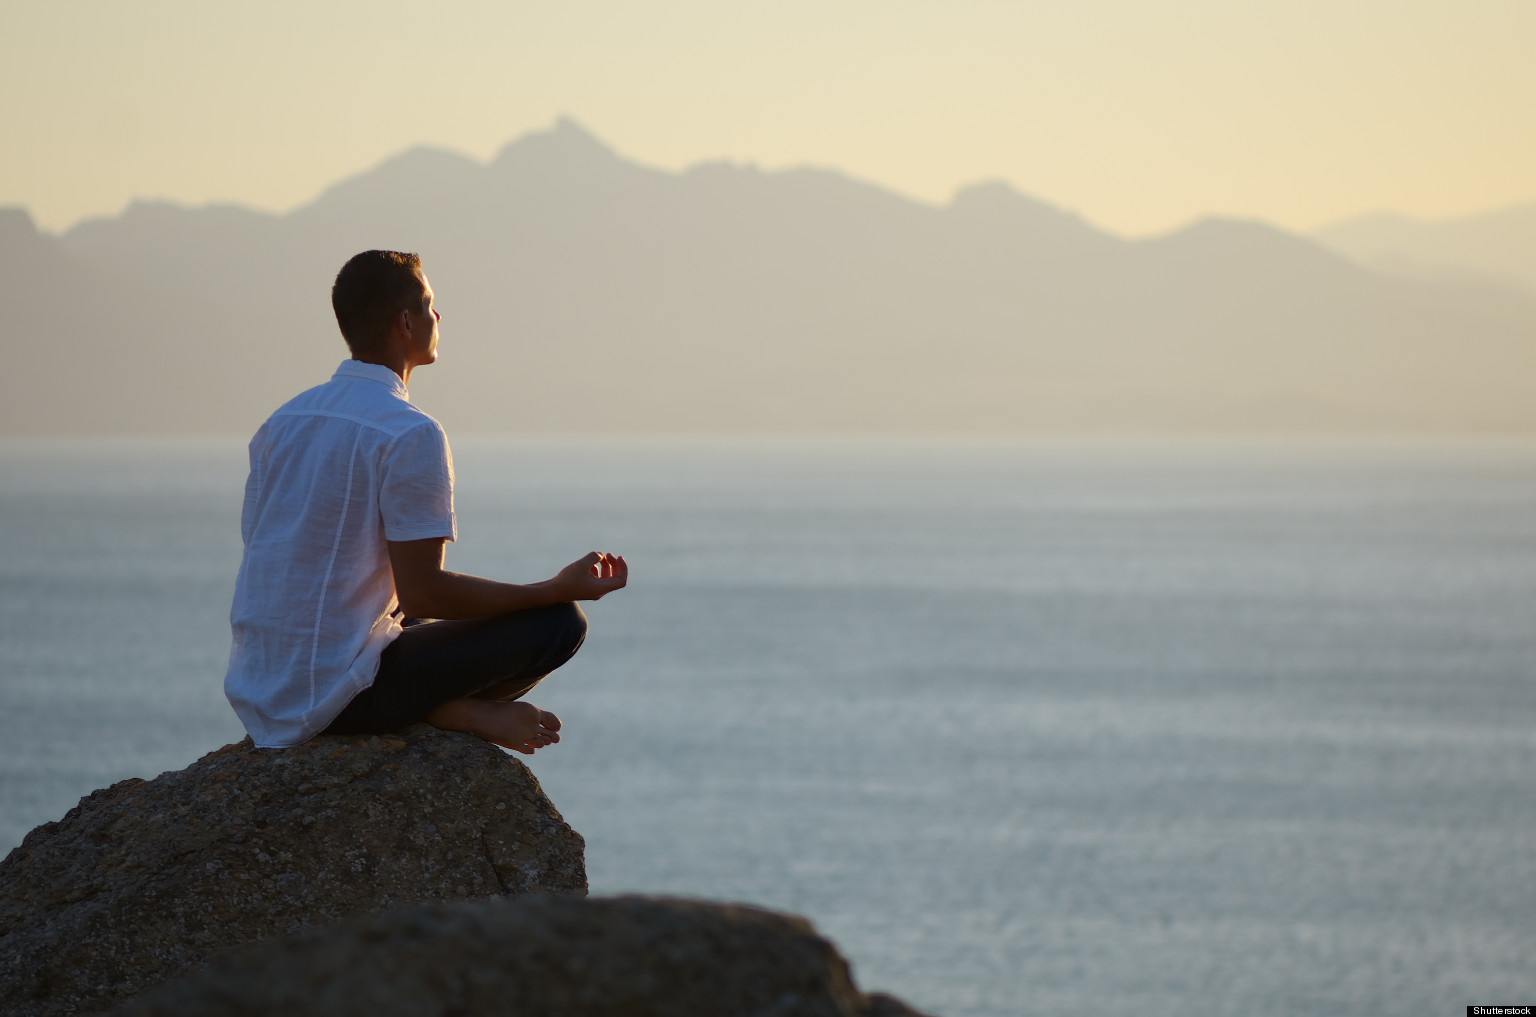 Is it possible to learn meditation on your own? 3